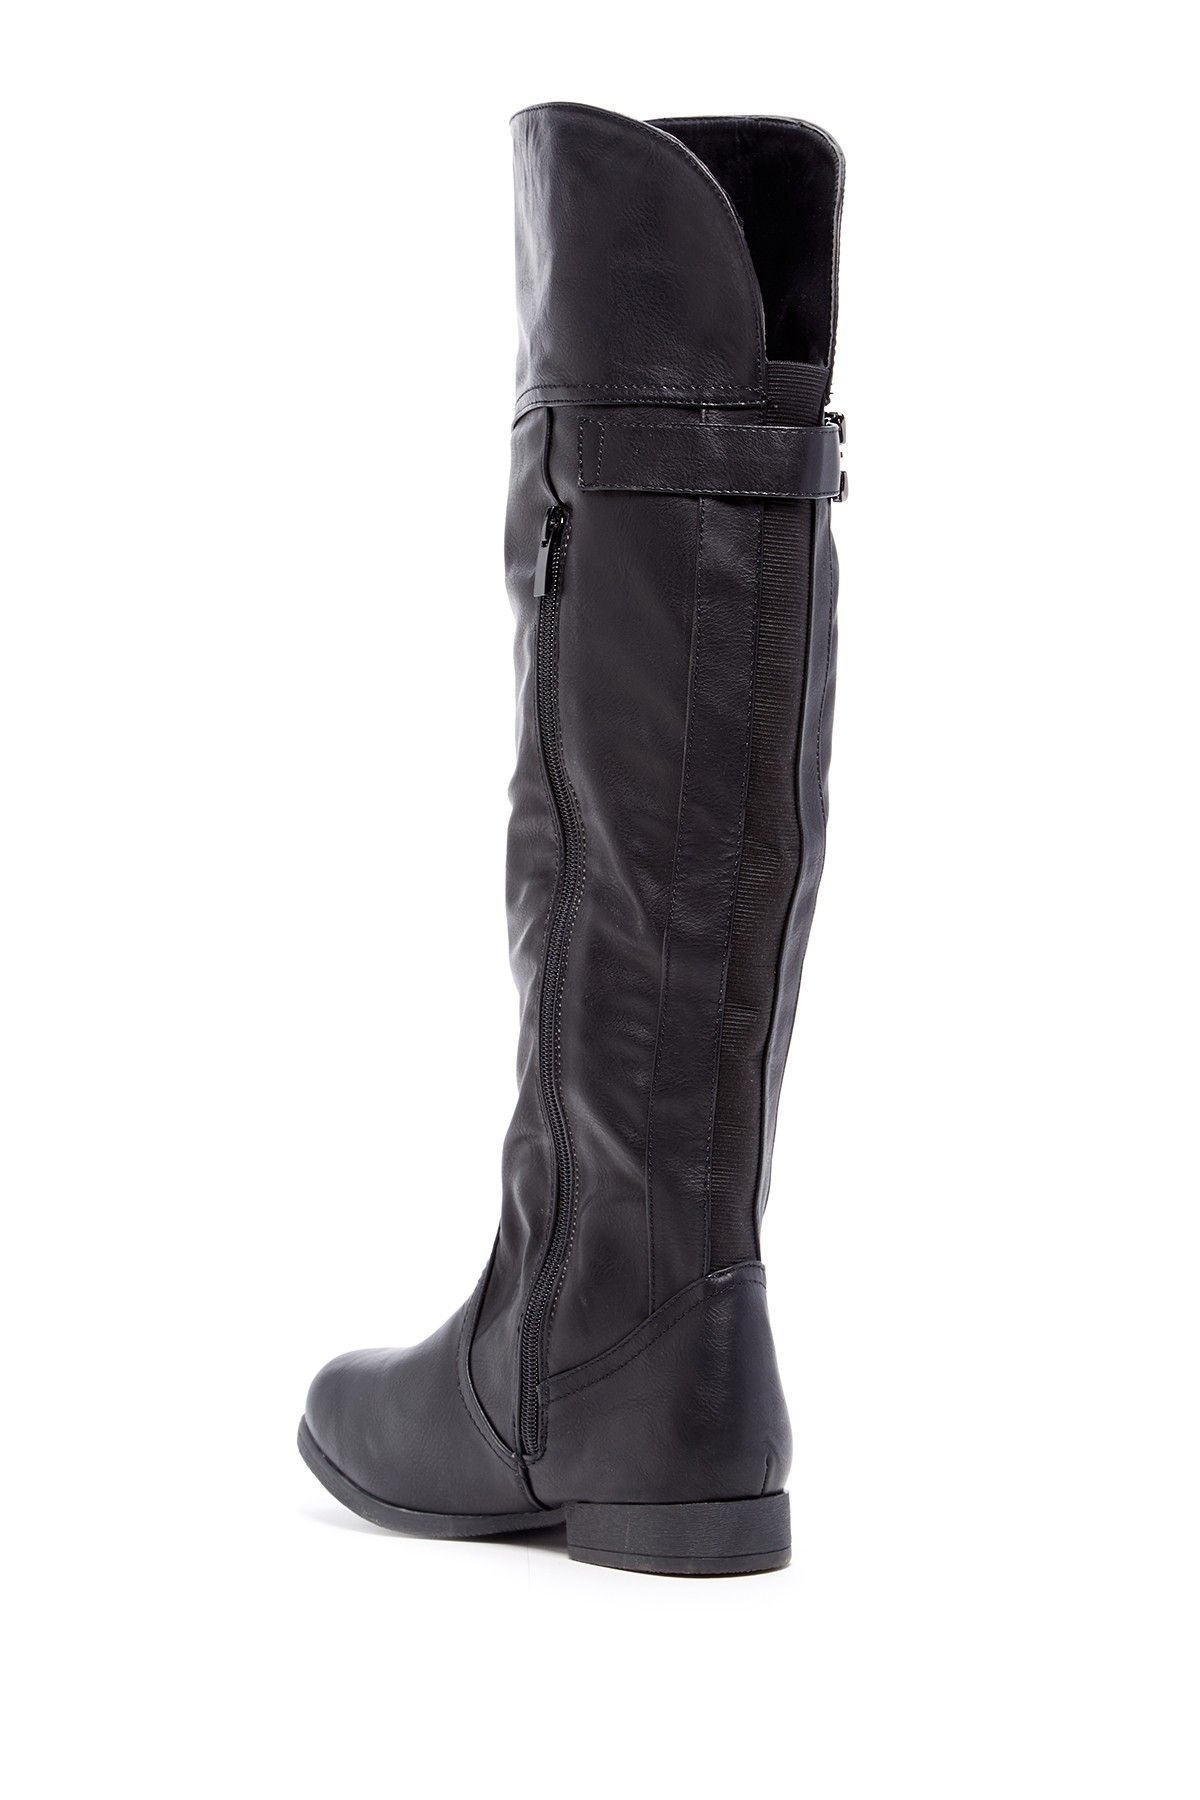 Land Over-the-Knee Boot by Top Guy on @nordstrom_rack